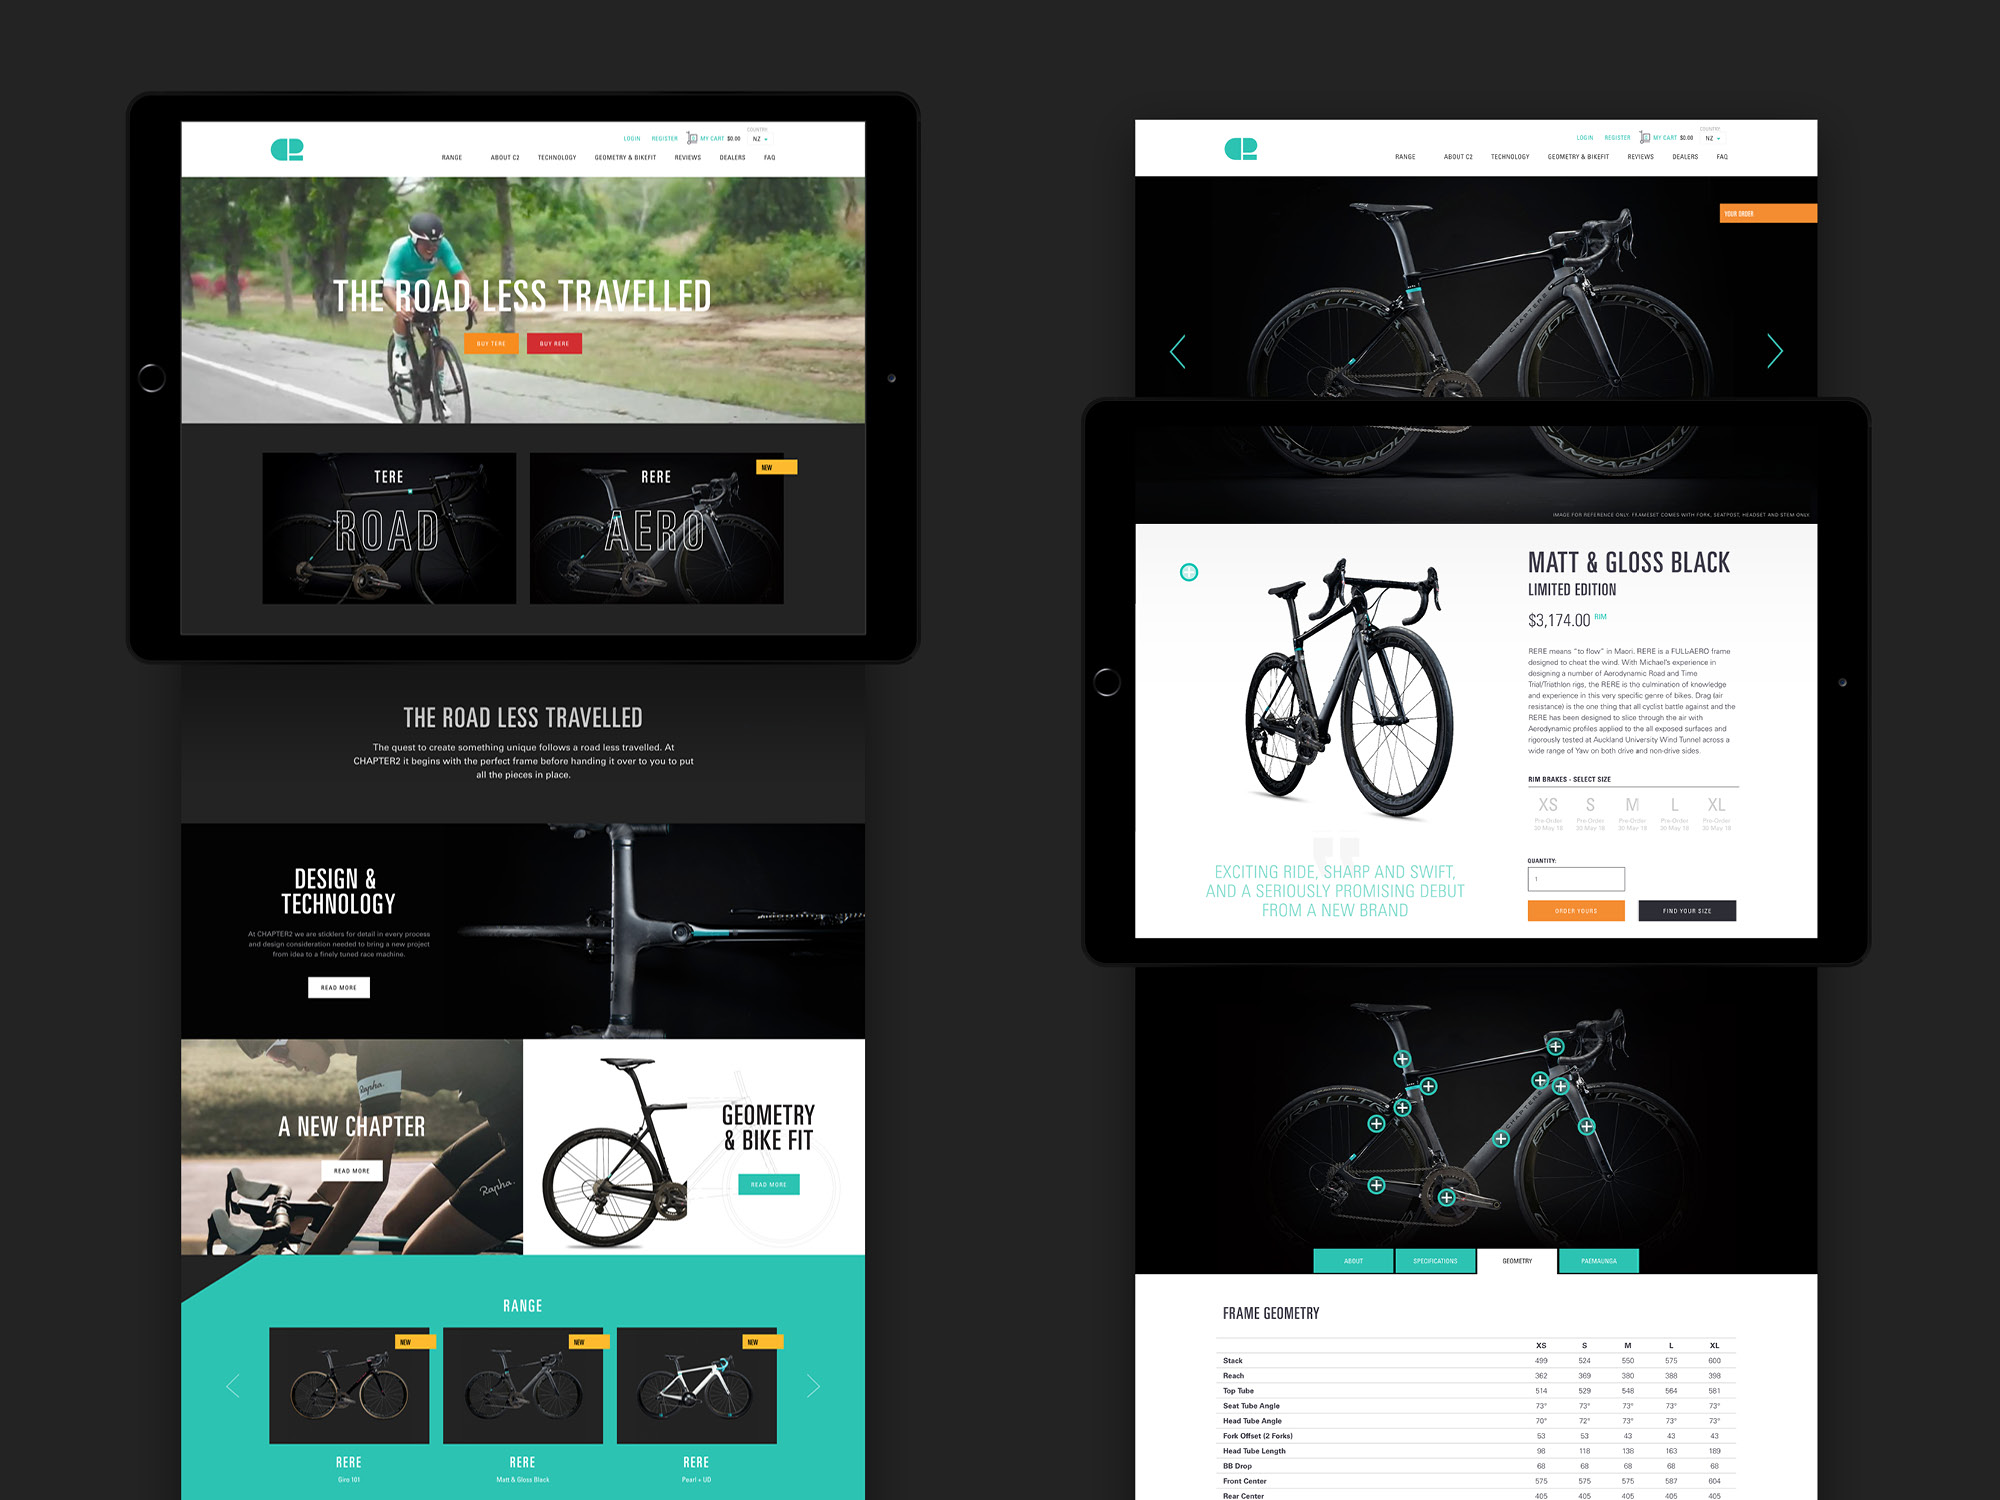 Onfire design Chapter2 cycling branding and website design3